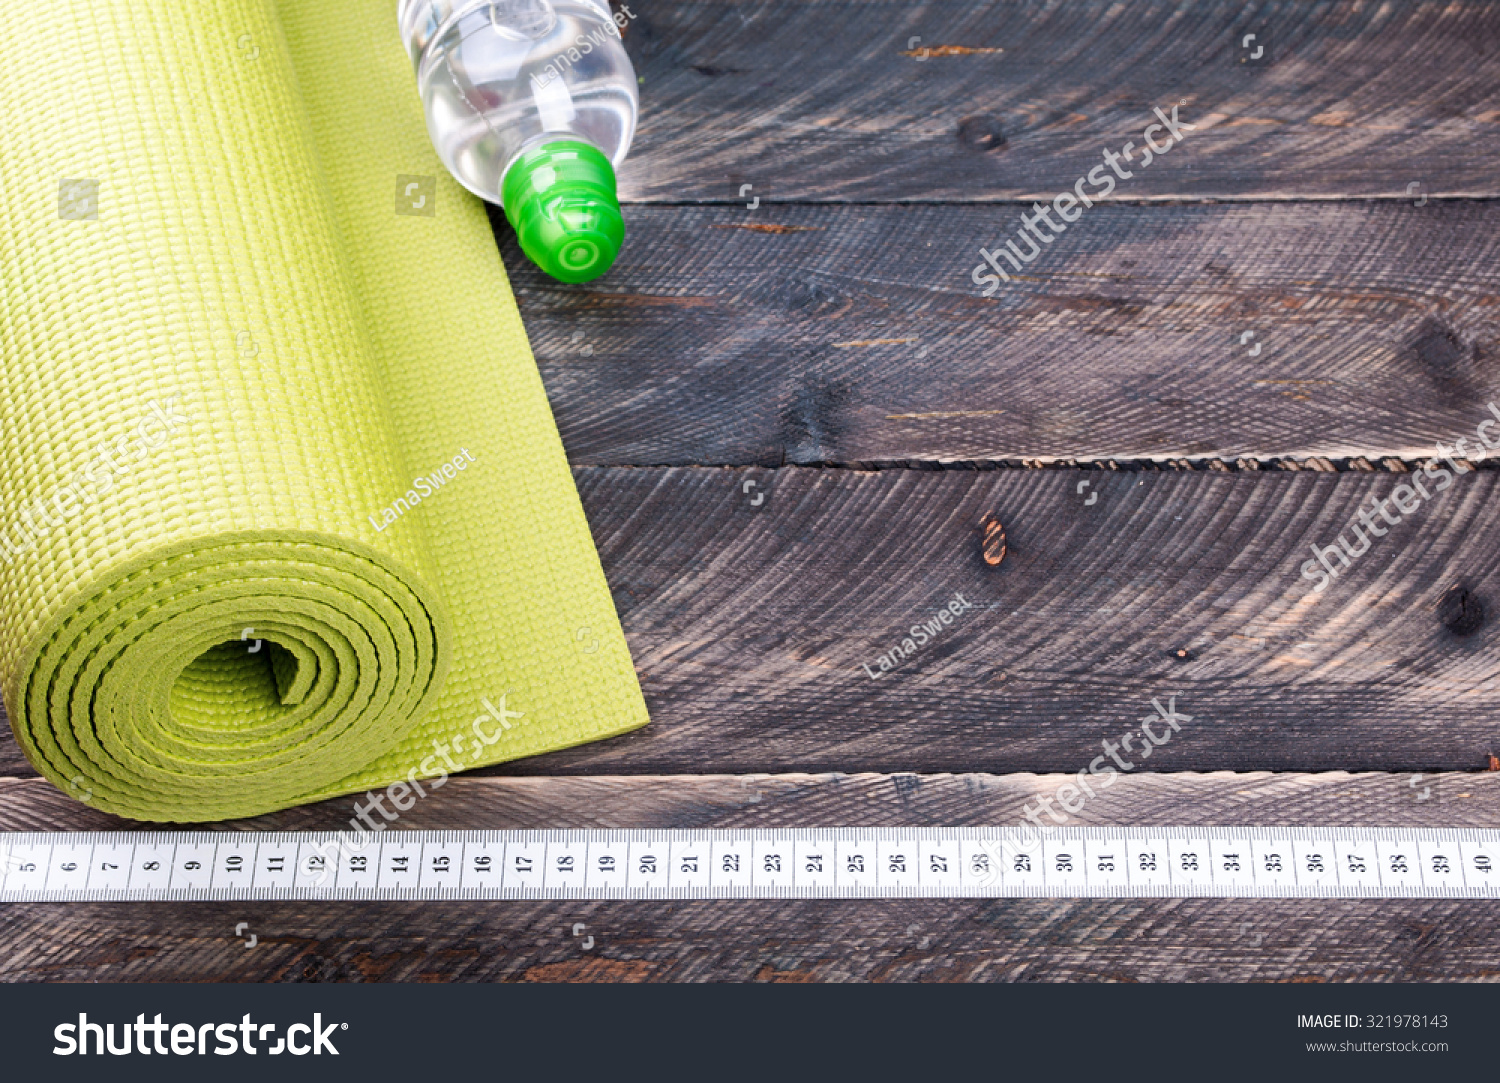 3475fdcbe32bb Yoga mat, water bottle and centimeter on a wooden background. Equipment for  yoga. Concept healthy lifestyle. Selective focus Stock Photo